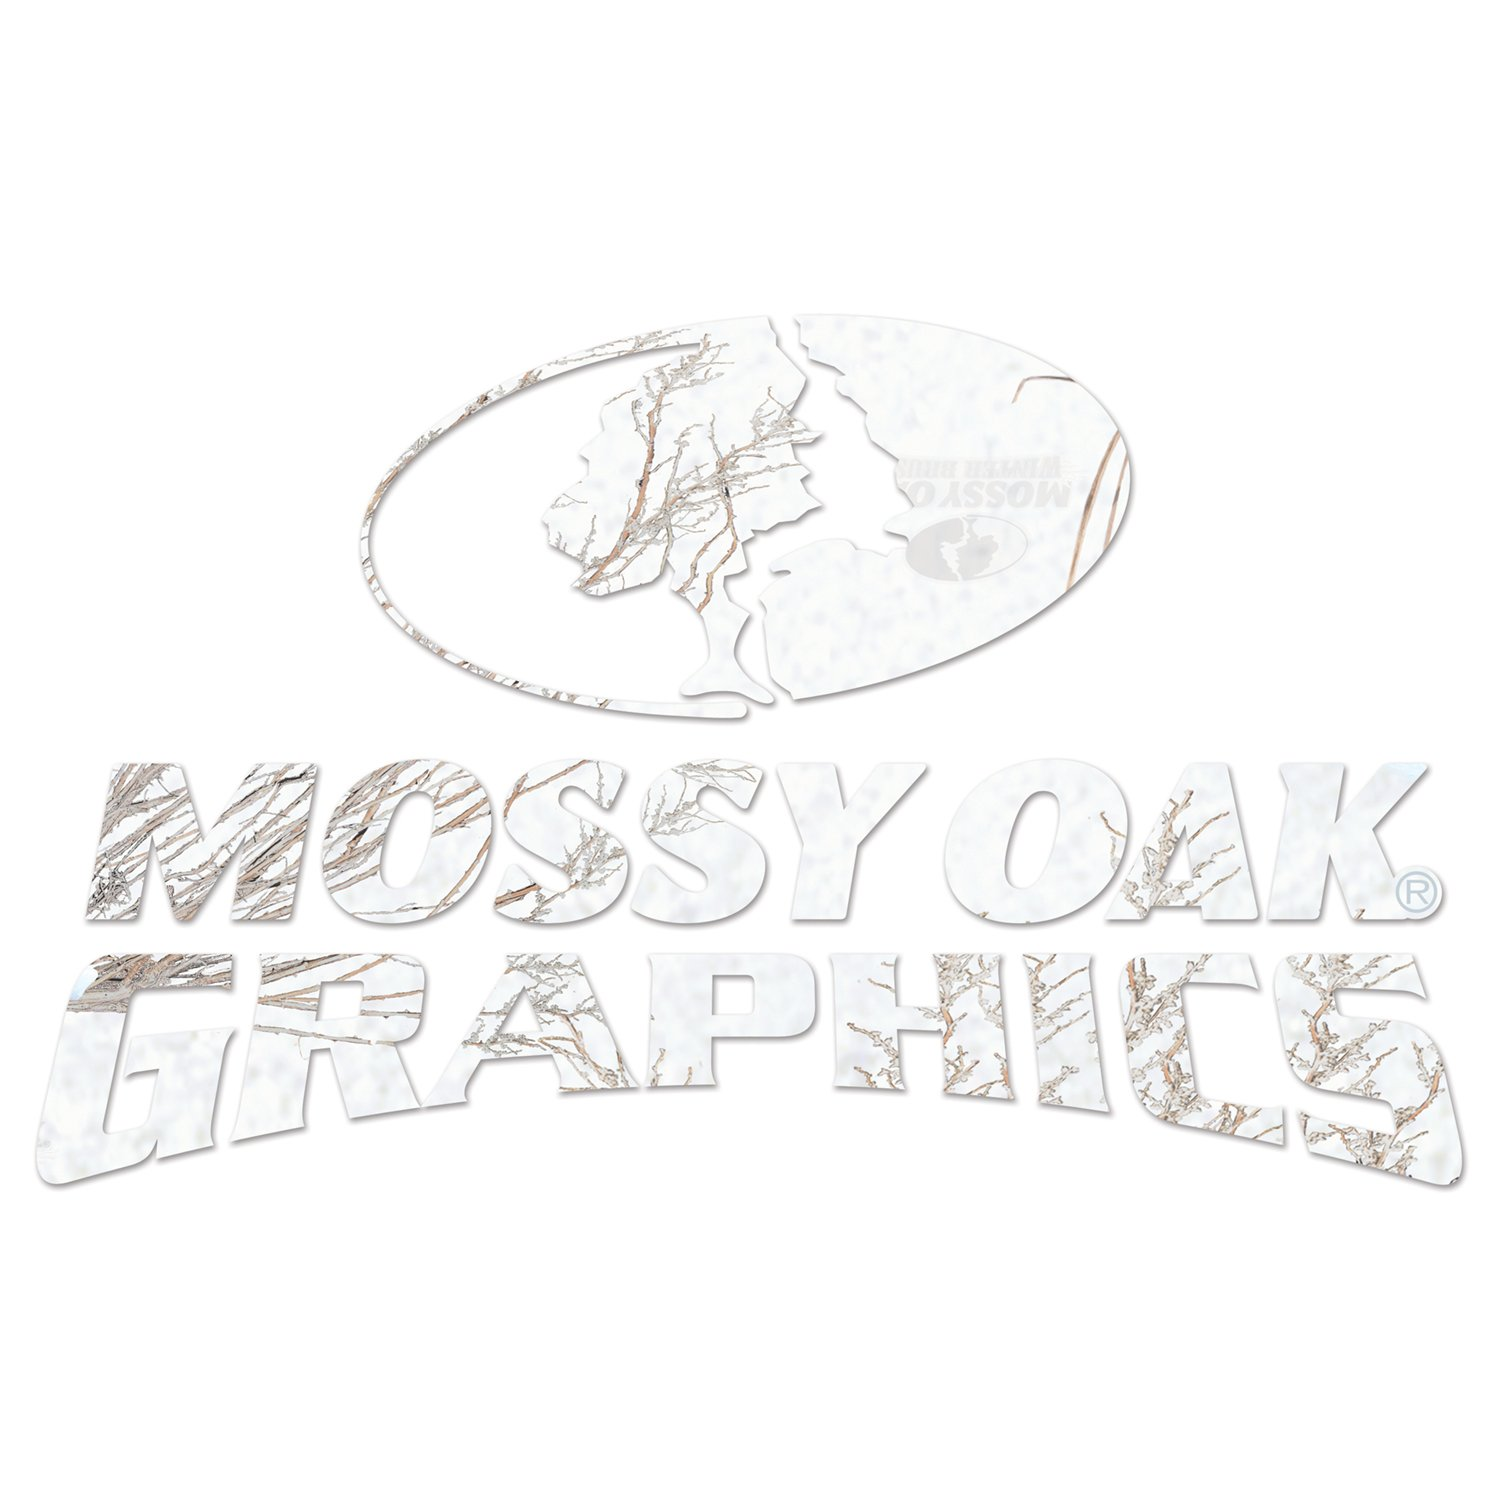 Mossy Oak Graphics 13007-WB-L Winter Oak Brush 14.25 x 9 Camo Logo Decal